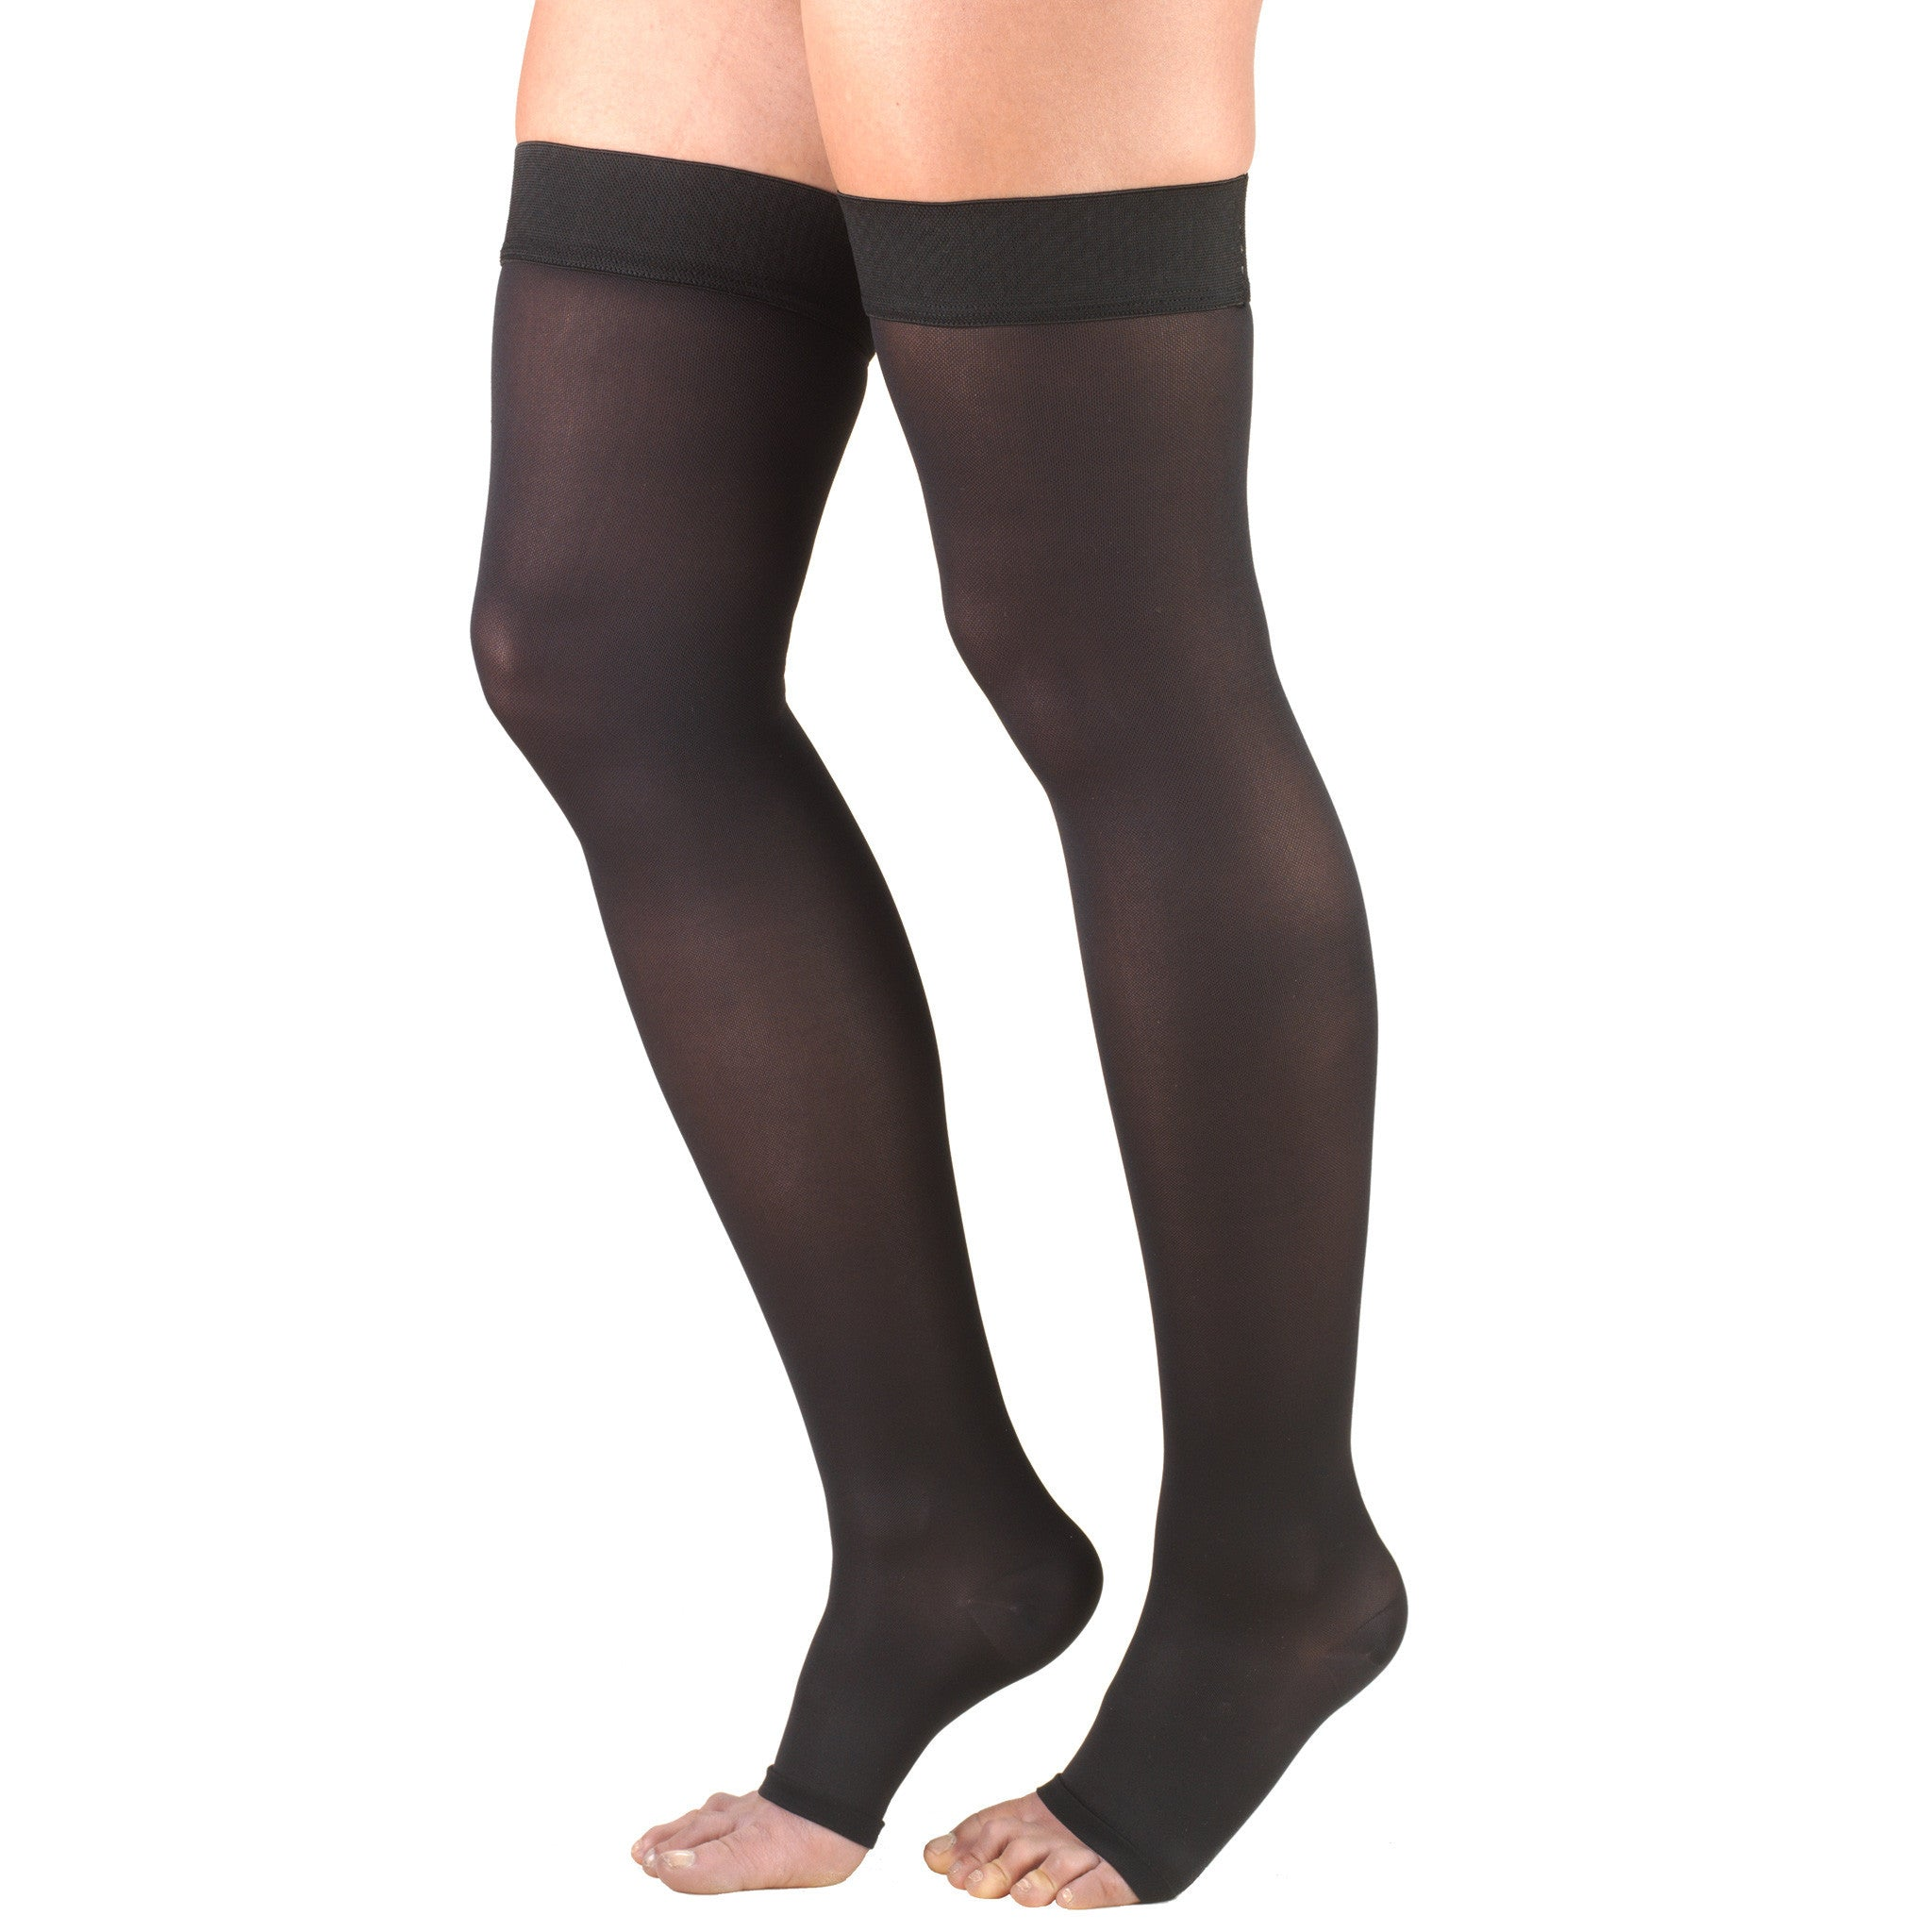 1ed4737c8cd Truform 362 Compression Stockings 20-30 mmHg Black – CompressionStocking.co